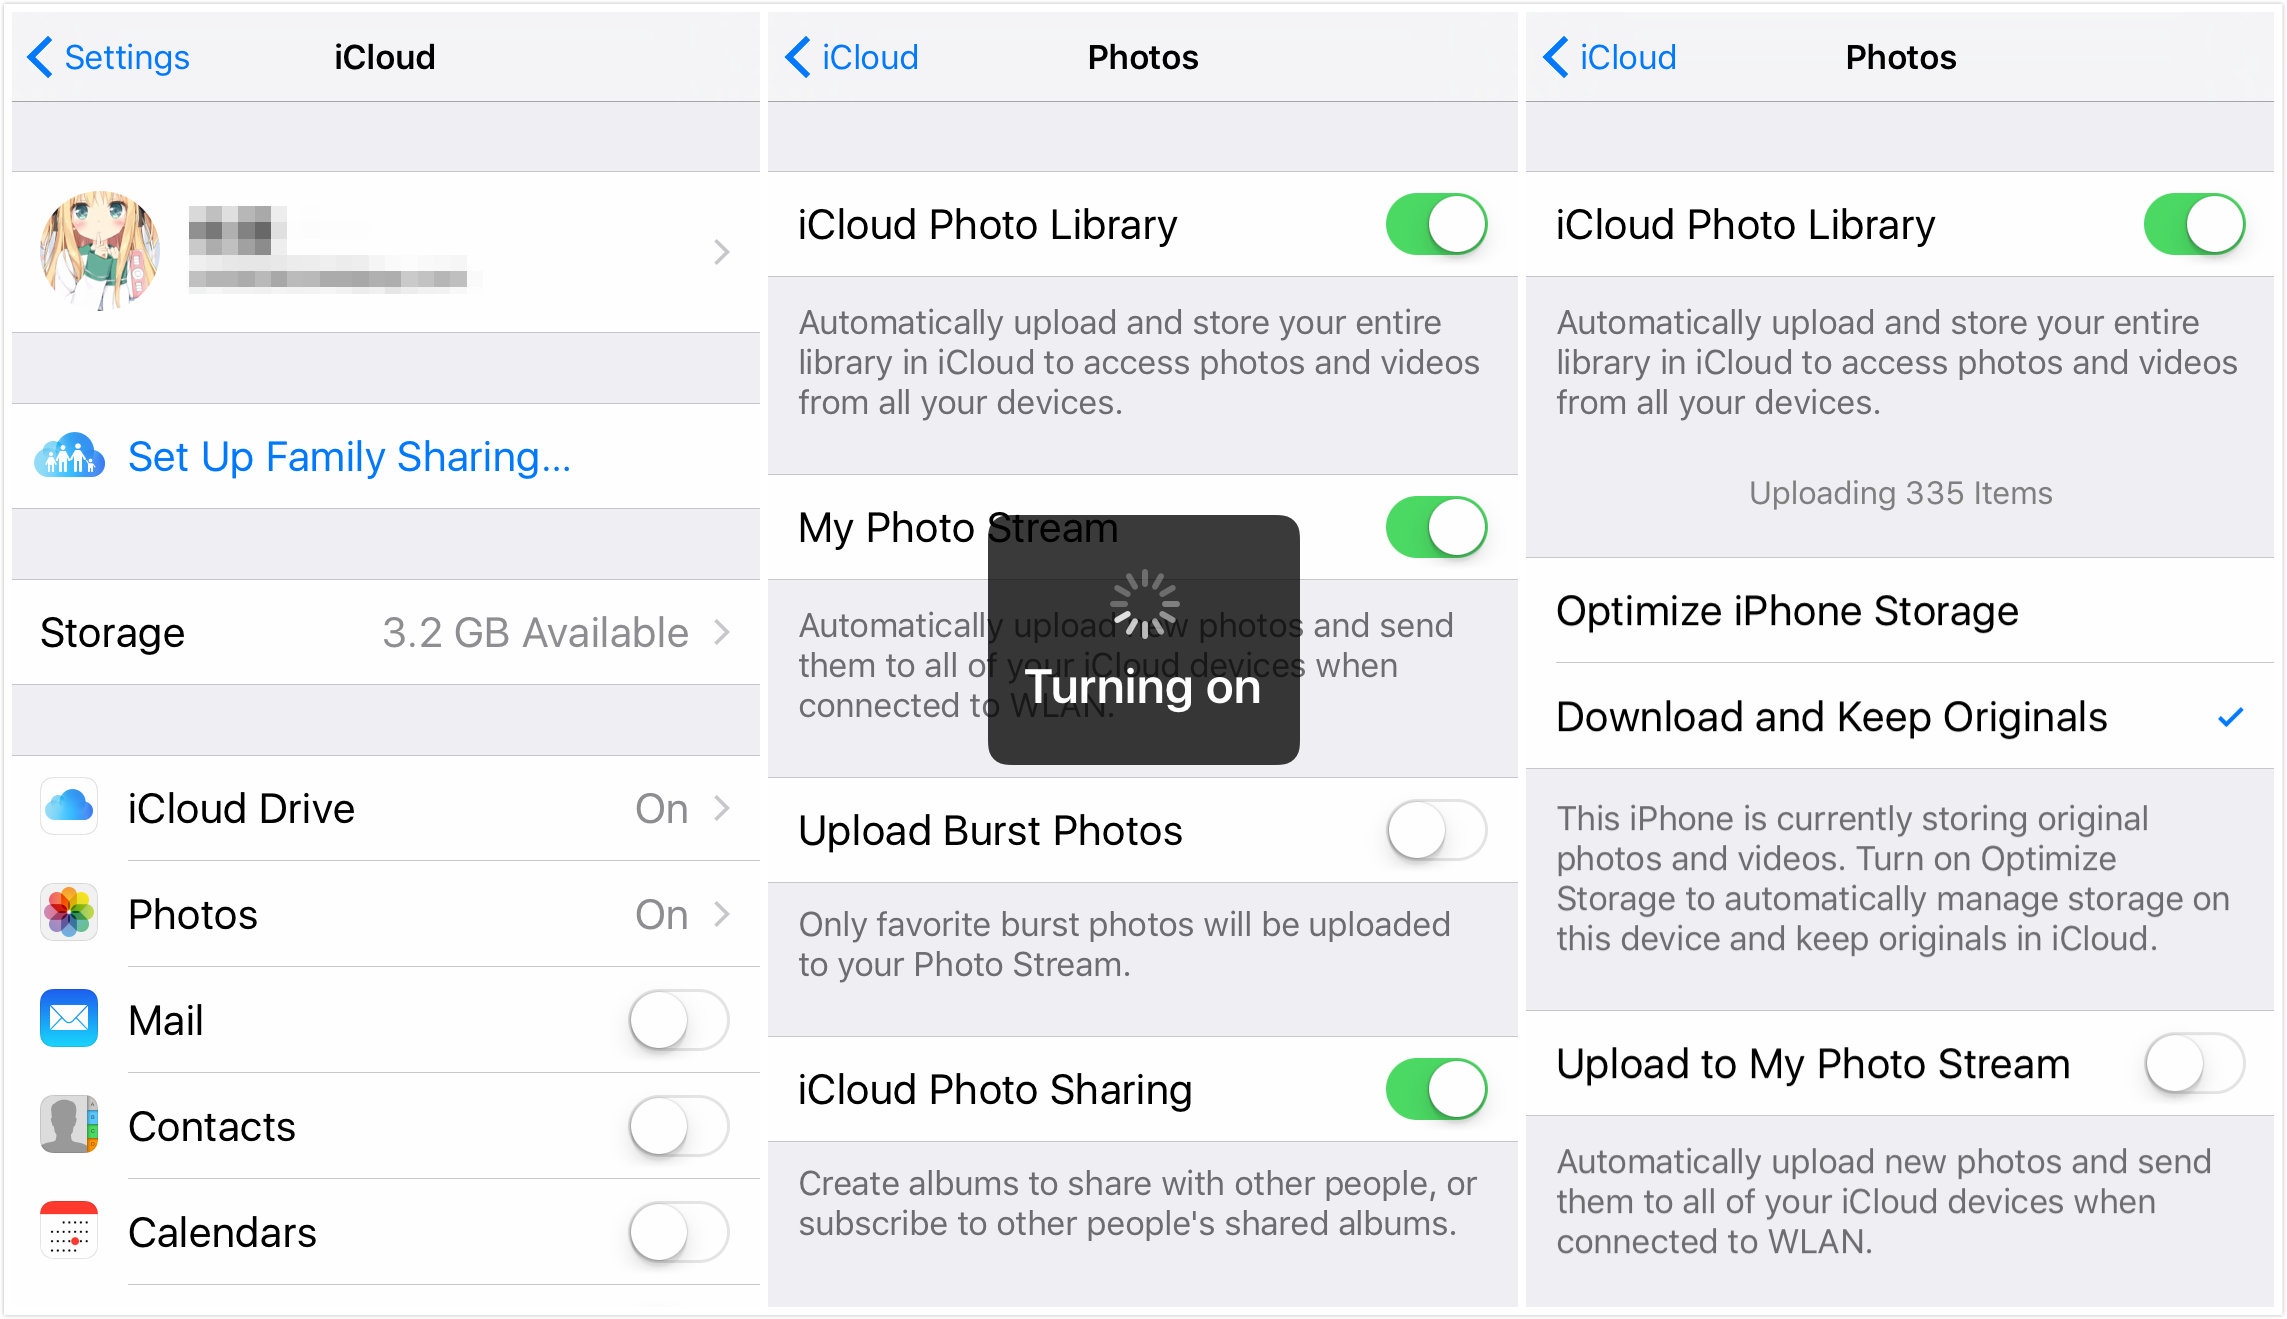 Transfer Photos from iPhone to iPhone 7/7 Plus with iCloud Photo Library